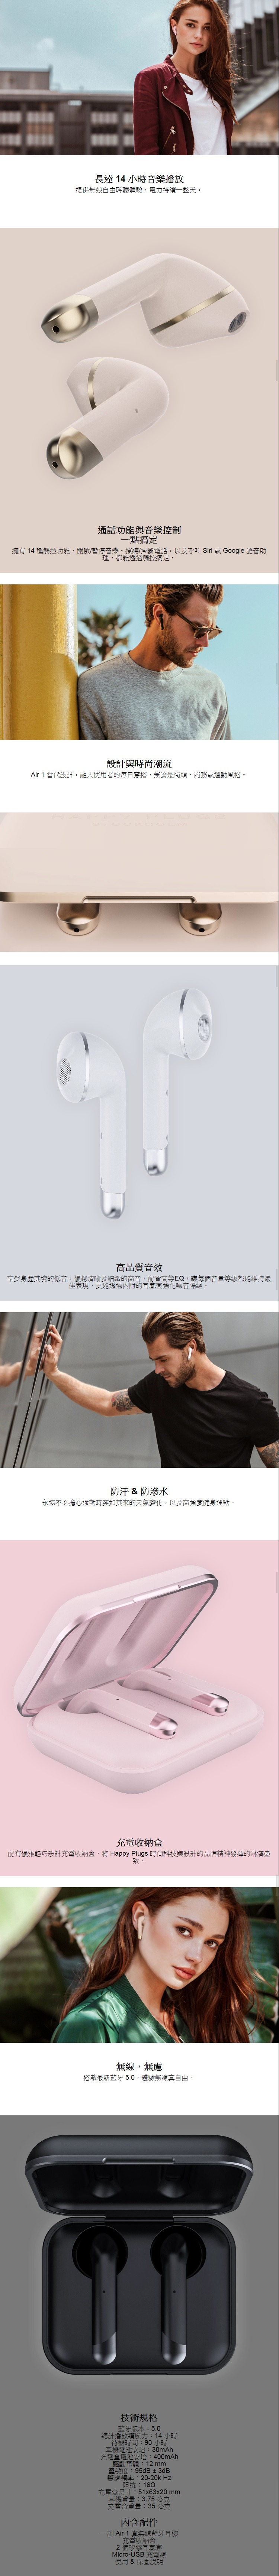 FireShot Capture 2704 - Air 1 - White Marble - Limited Editio_ - https___tw.happyplugs.com_product.jpg